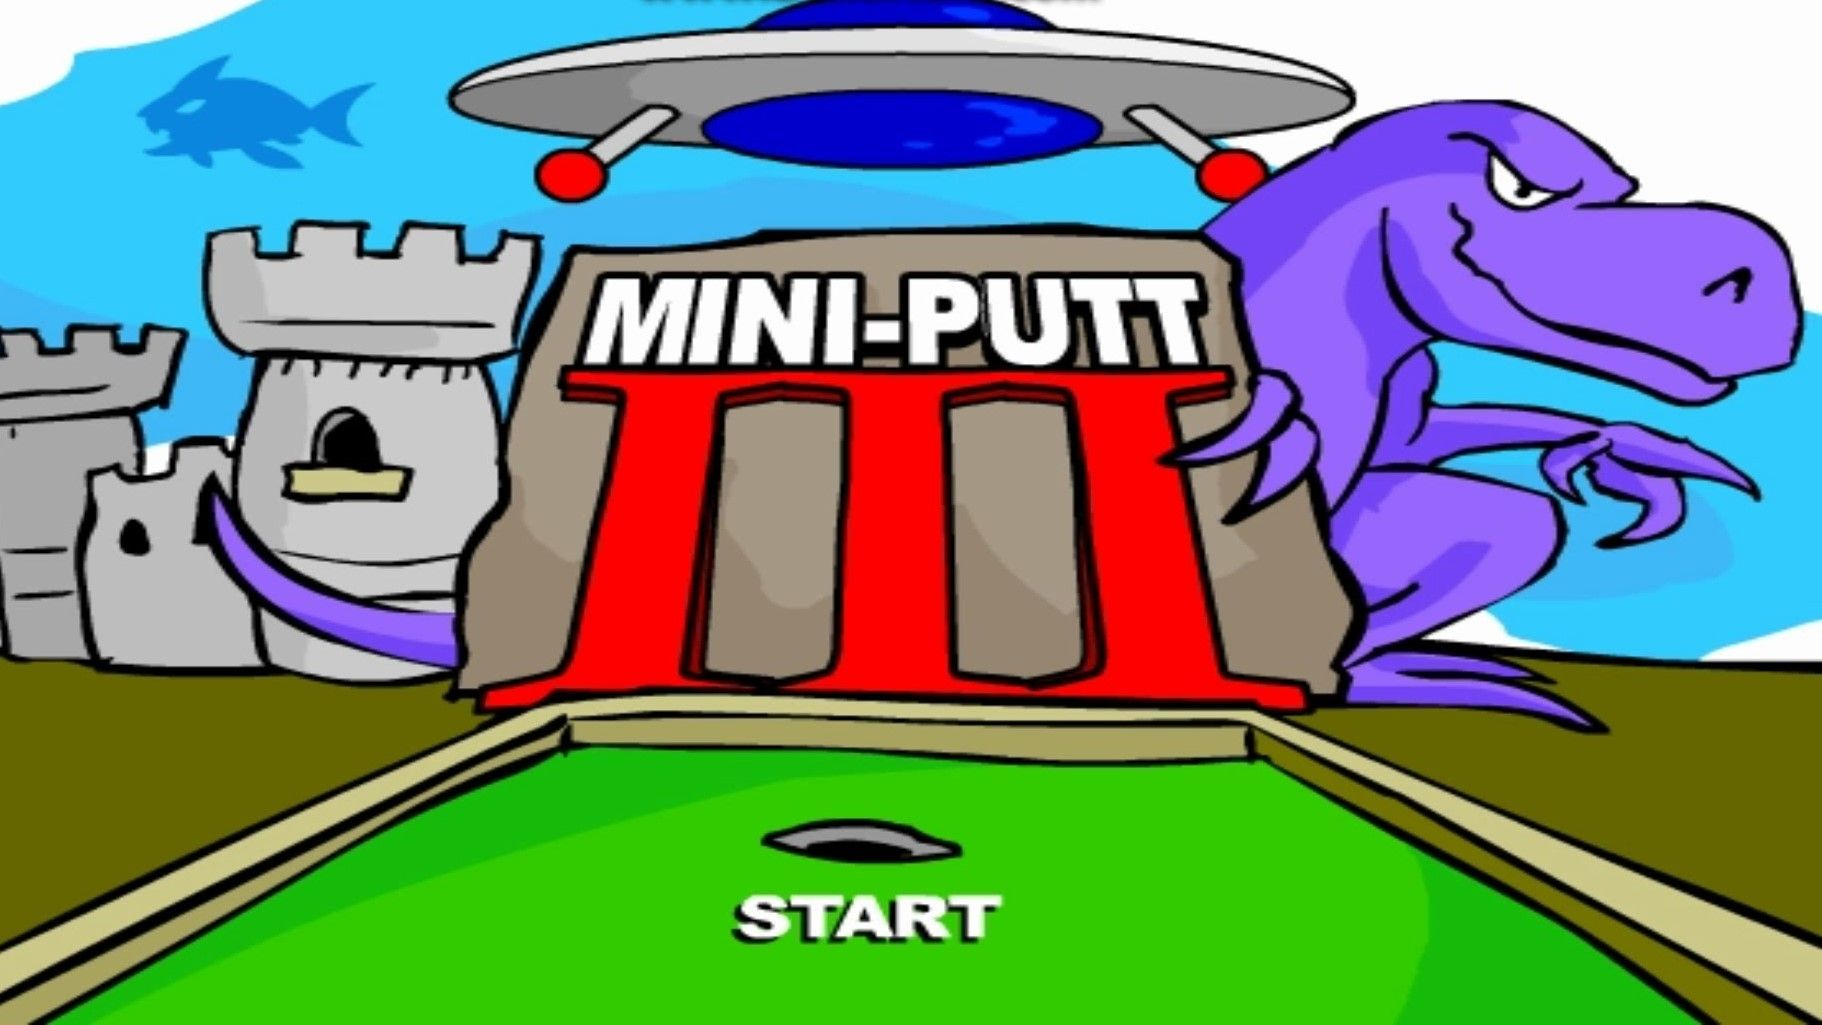 MiniPutt 3 2018 PC Mac Game Full Free DOwnload Highly